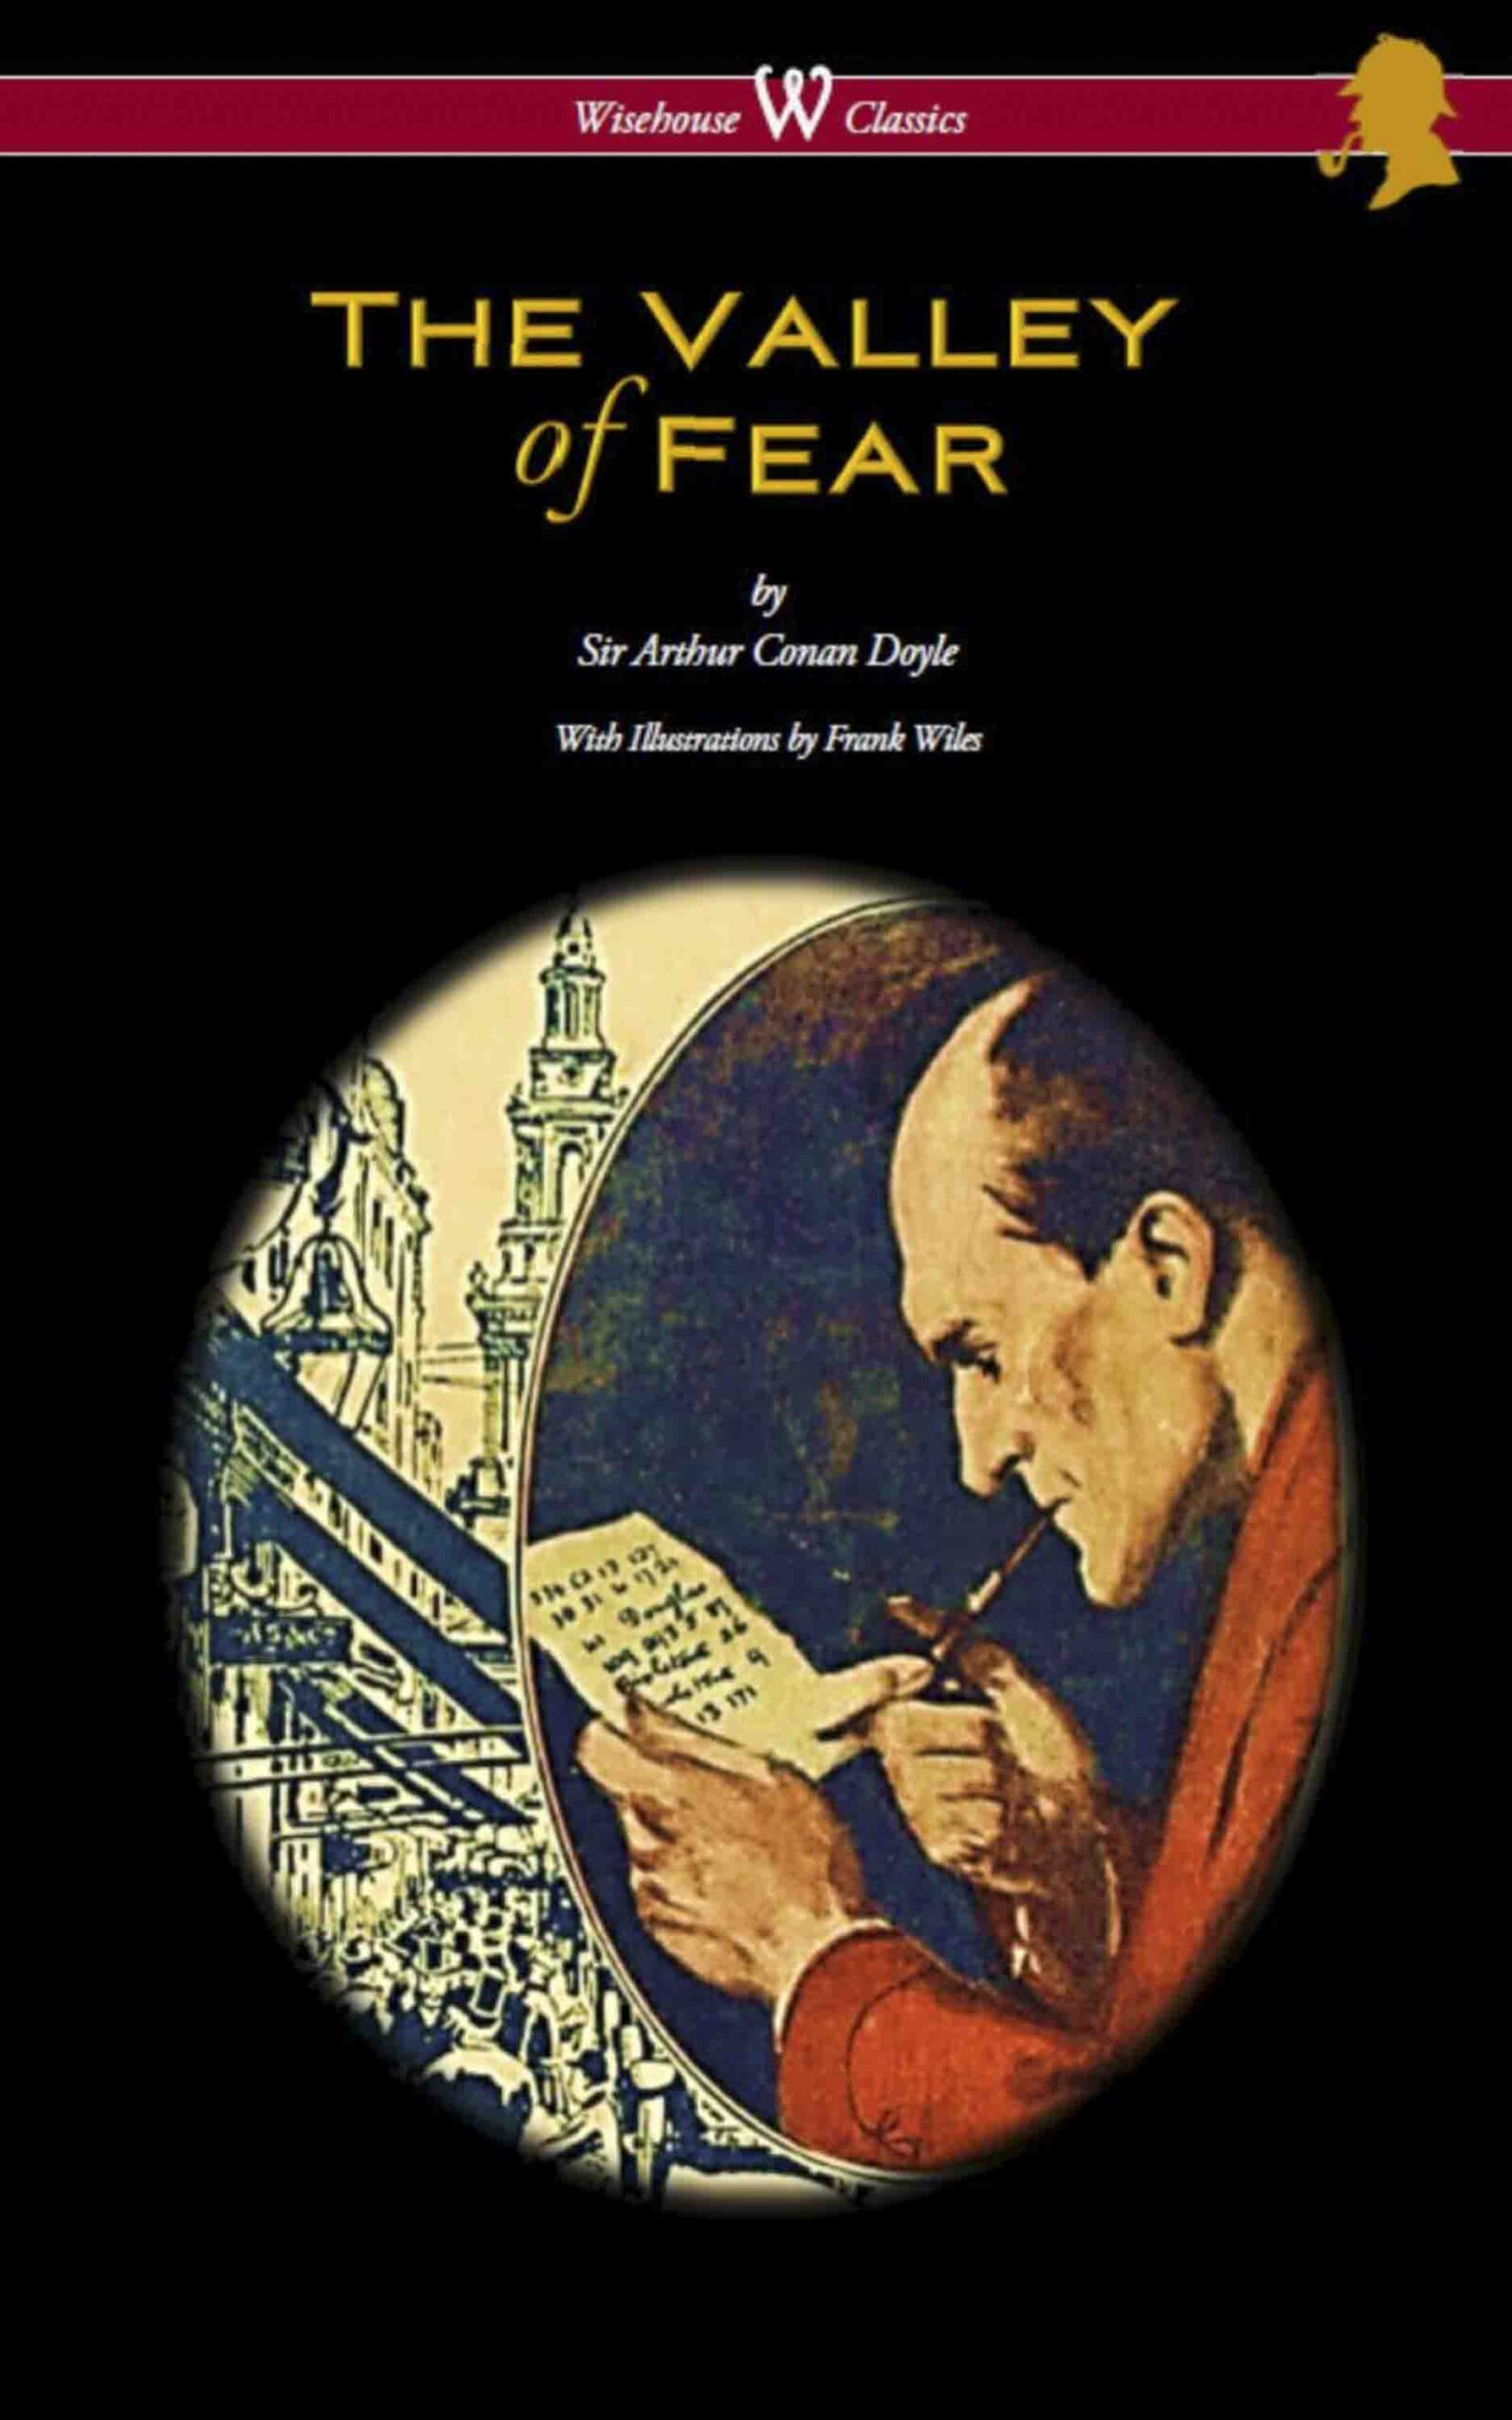 The Valley of Fear (Wisehouse Classics Edition – With Original Illustrations by Frank Wiles)